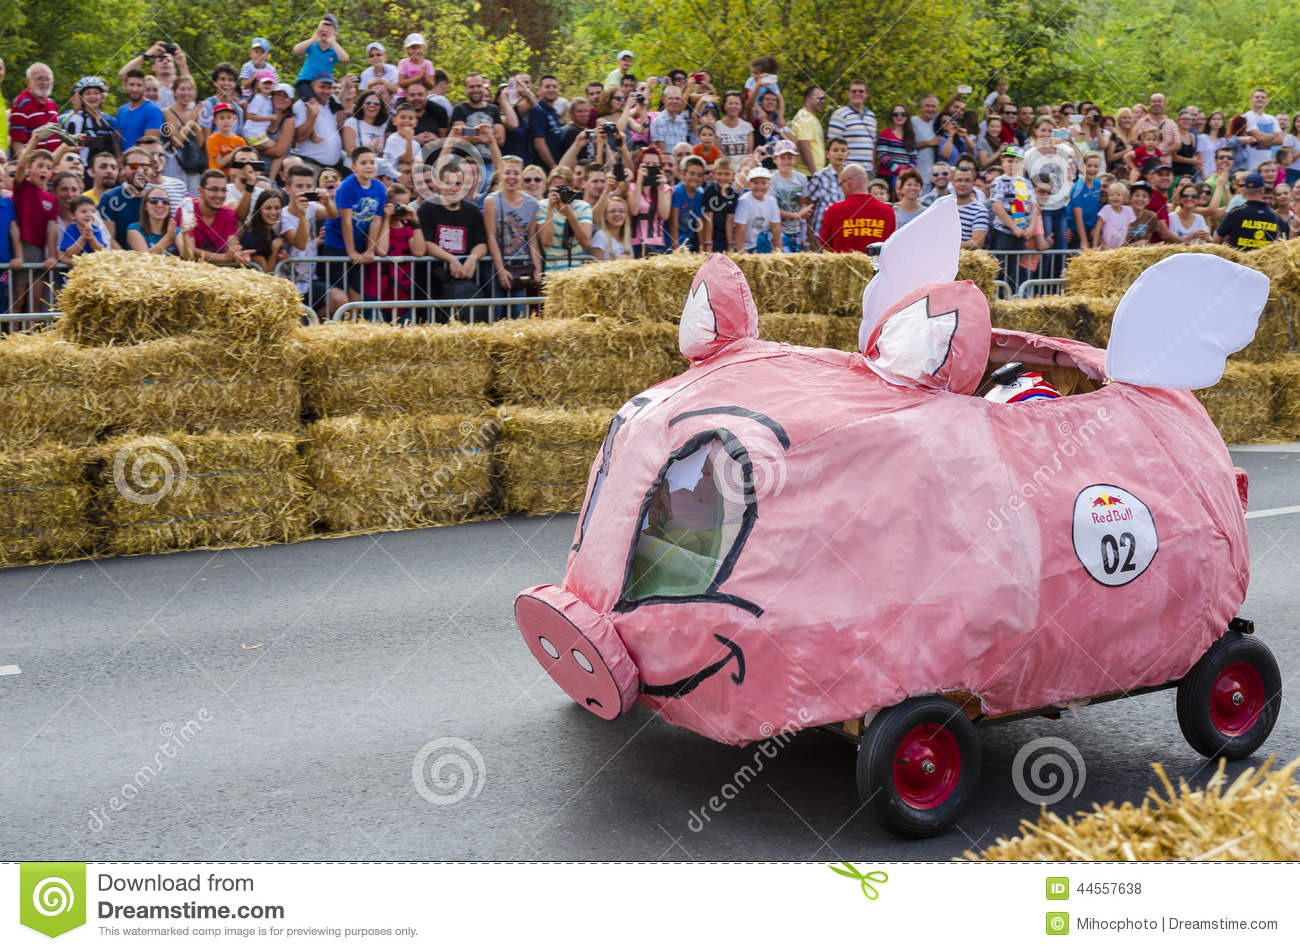 Red Bull Soap Box Derby >> Red Bull Soapbox Bucharest 2014 Editorial Stock Photo - Image: 44557638